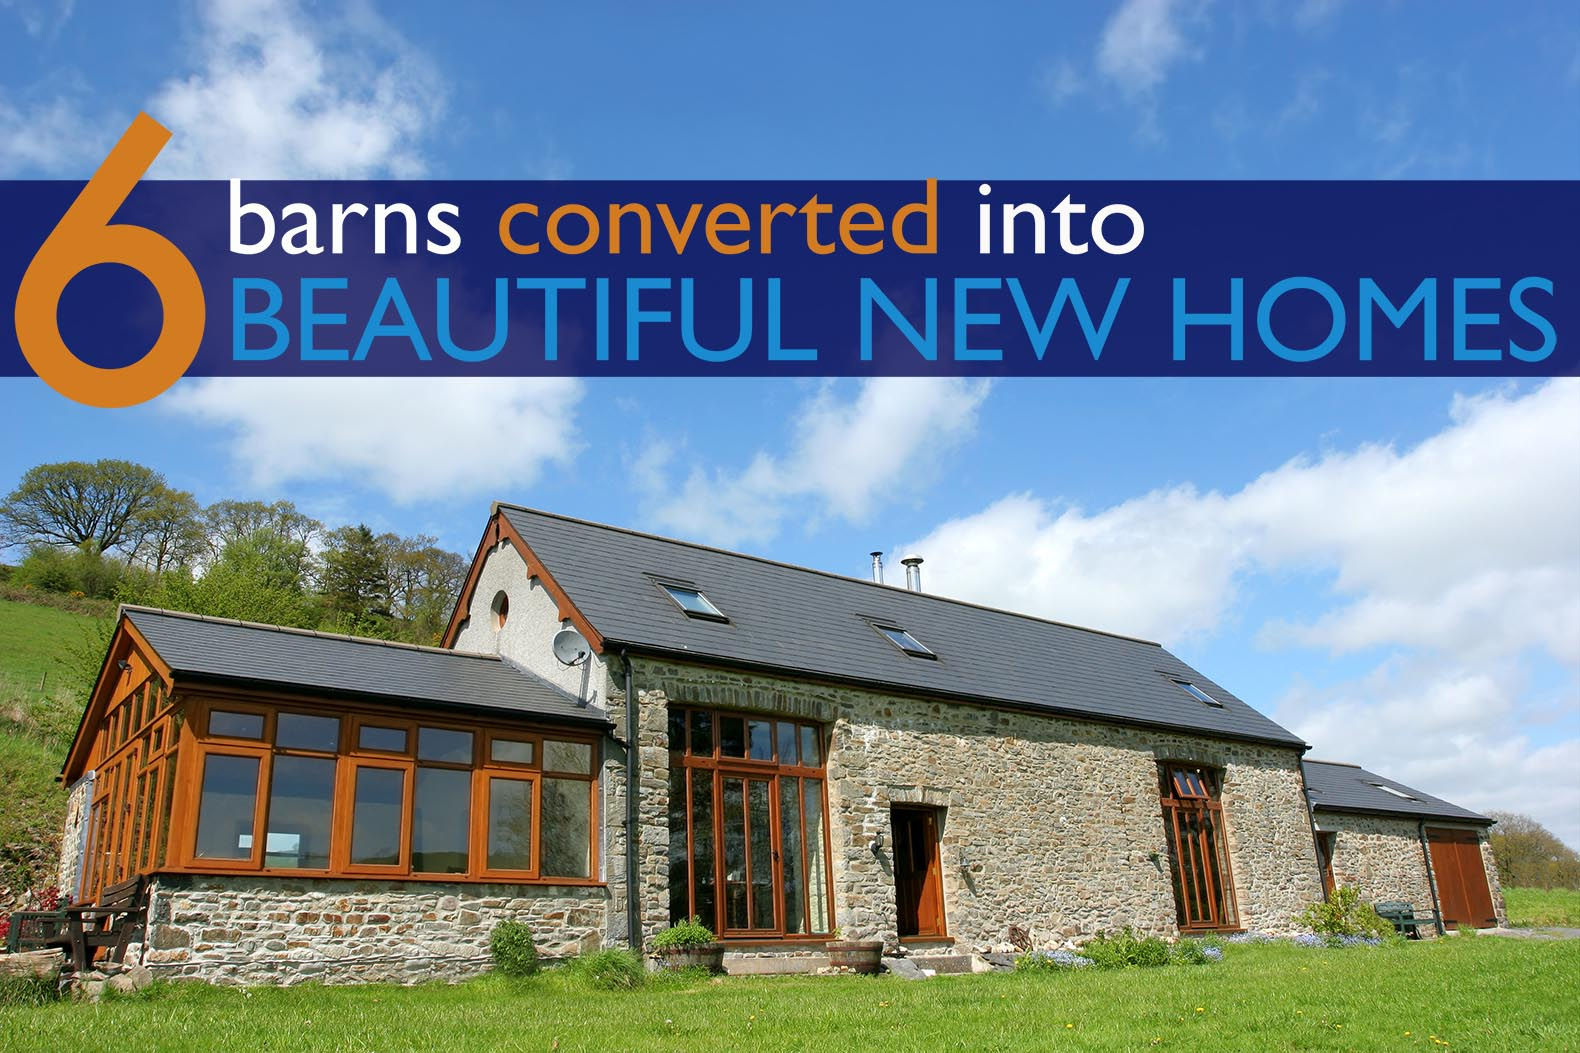 6 Barns Converted Into Beautiful New Homes